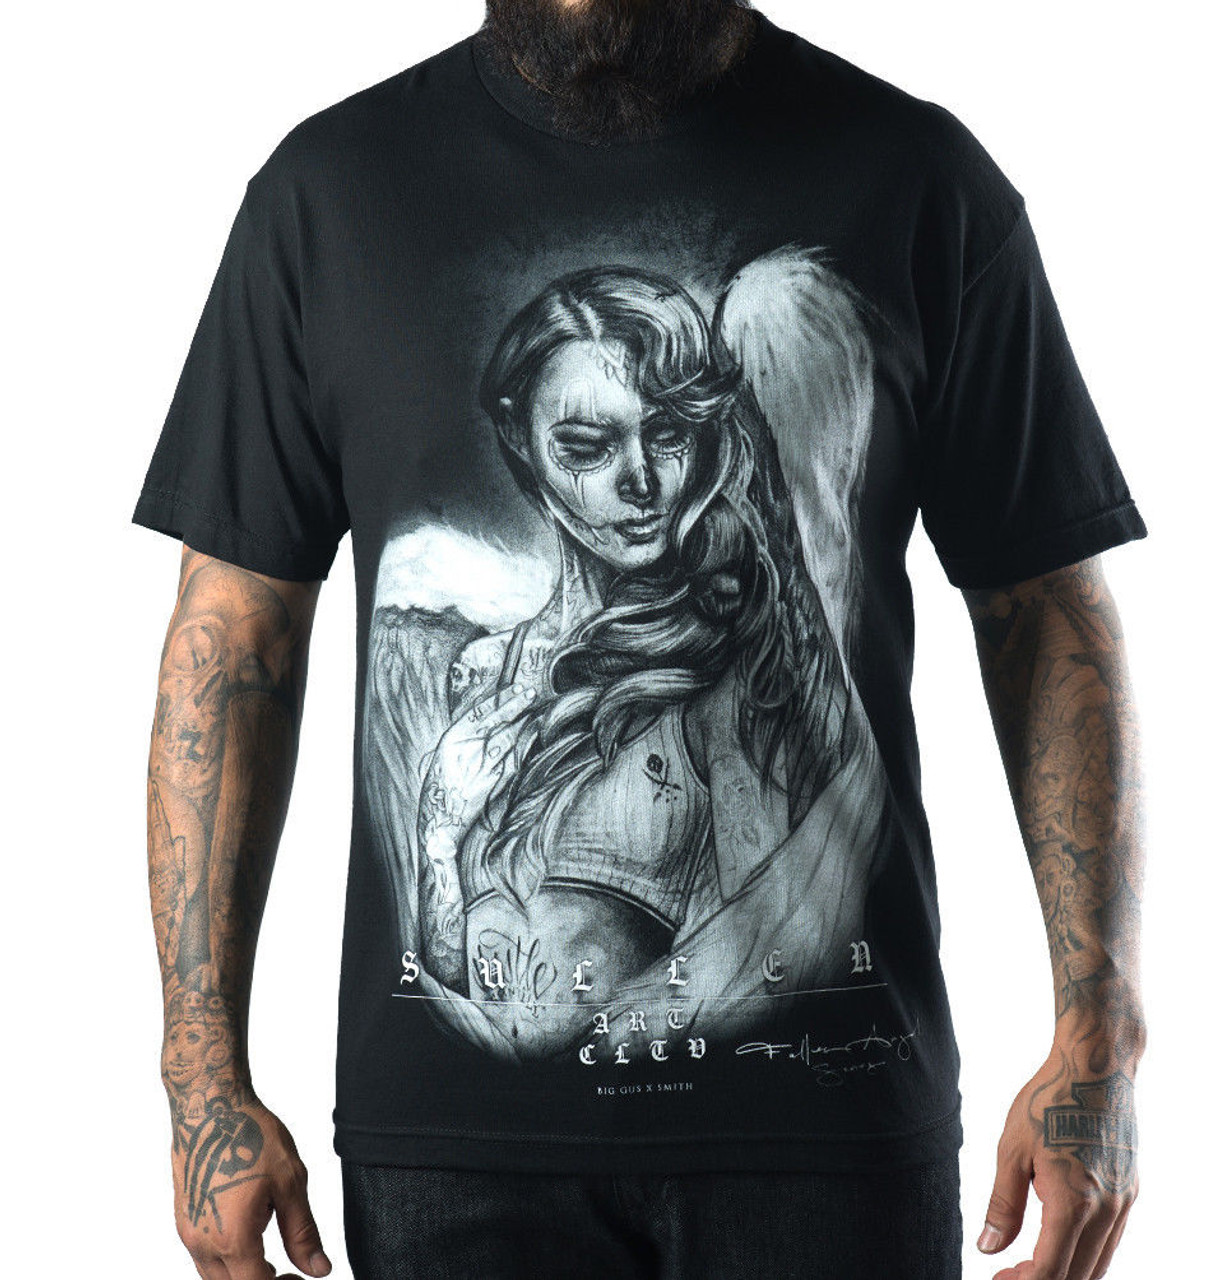 80e39616f0 Sullen Clothing Fallen Love Ryan Smith Big Gus Tattoo Mens T Tee Shirt  SCM0097